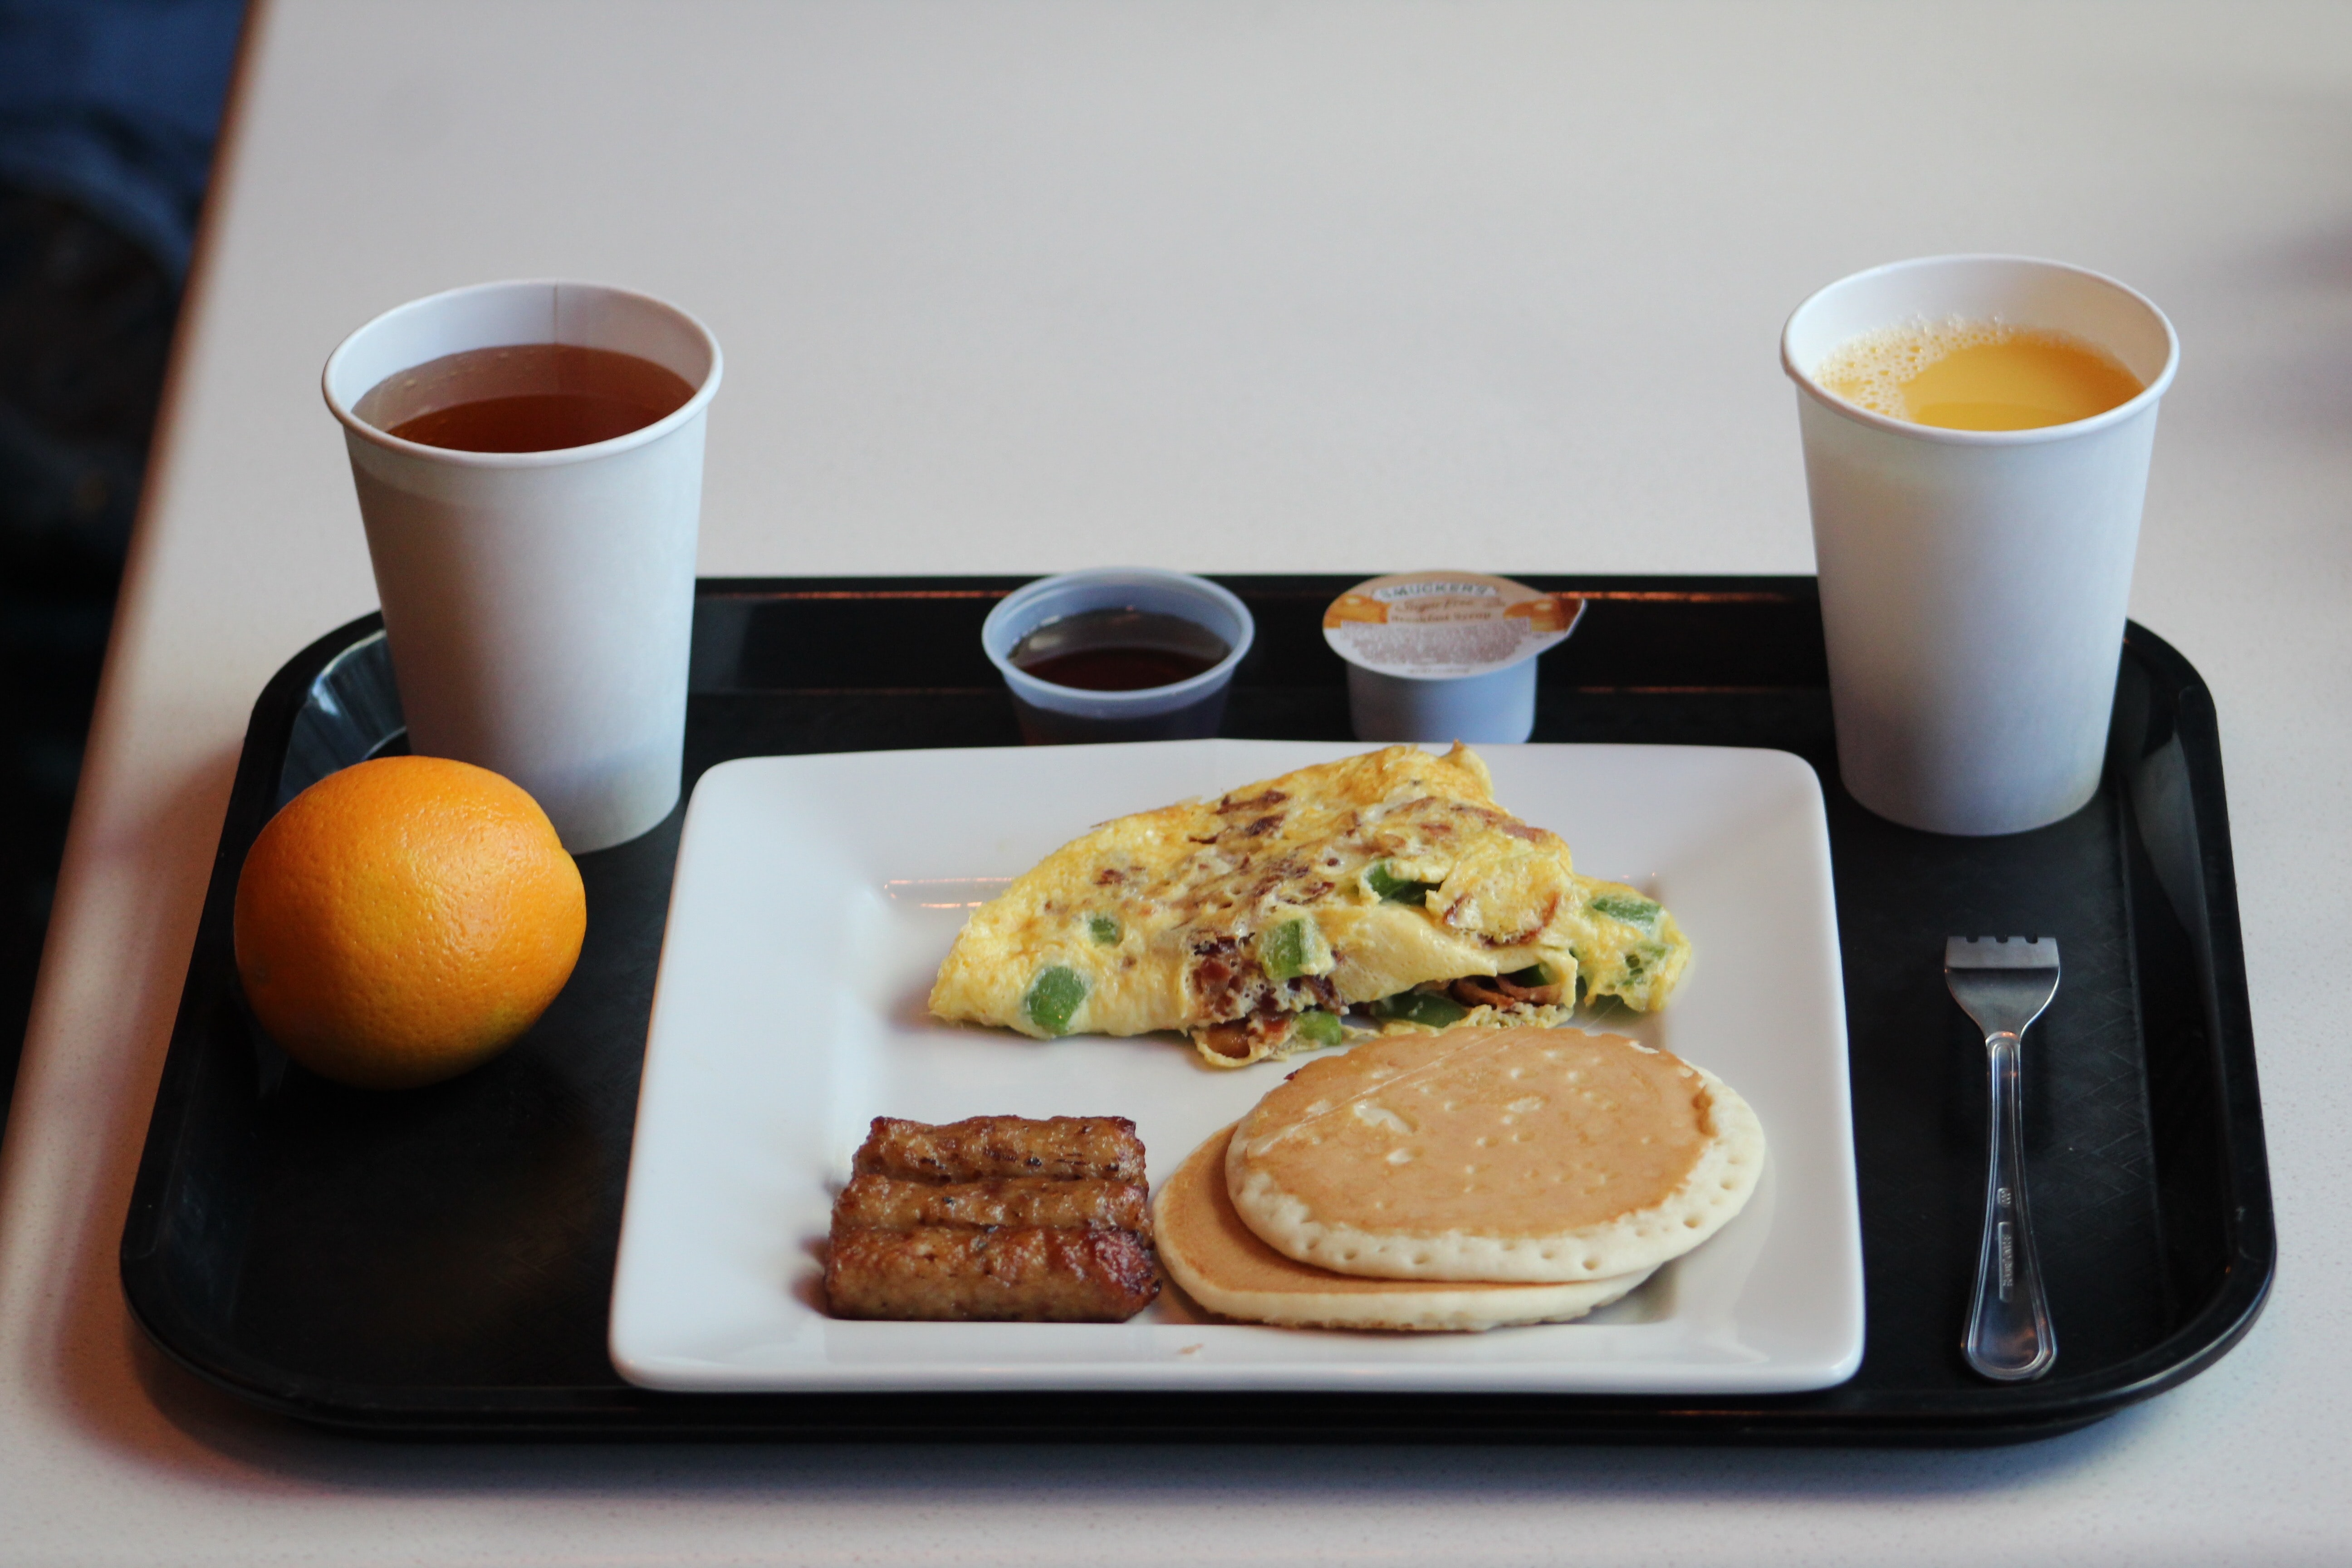 egg omelet with sausage, pancake and coffee on tray